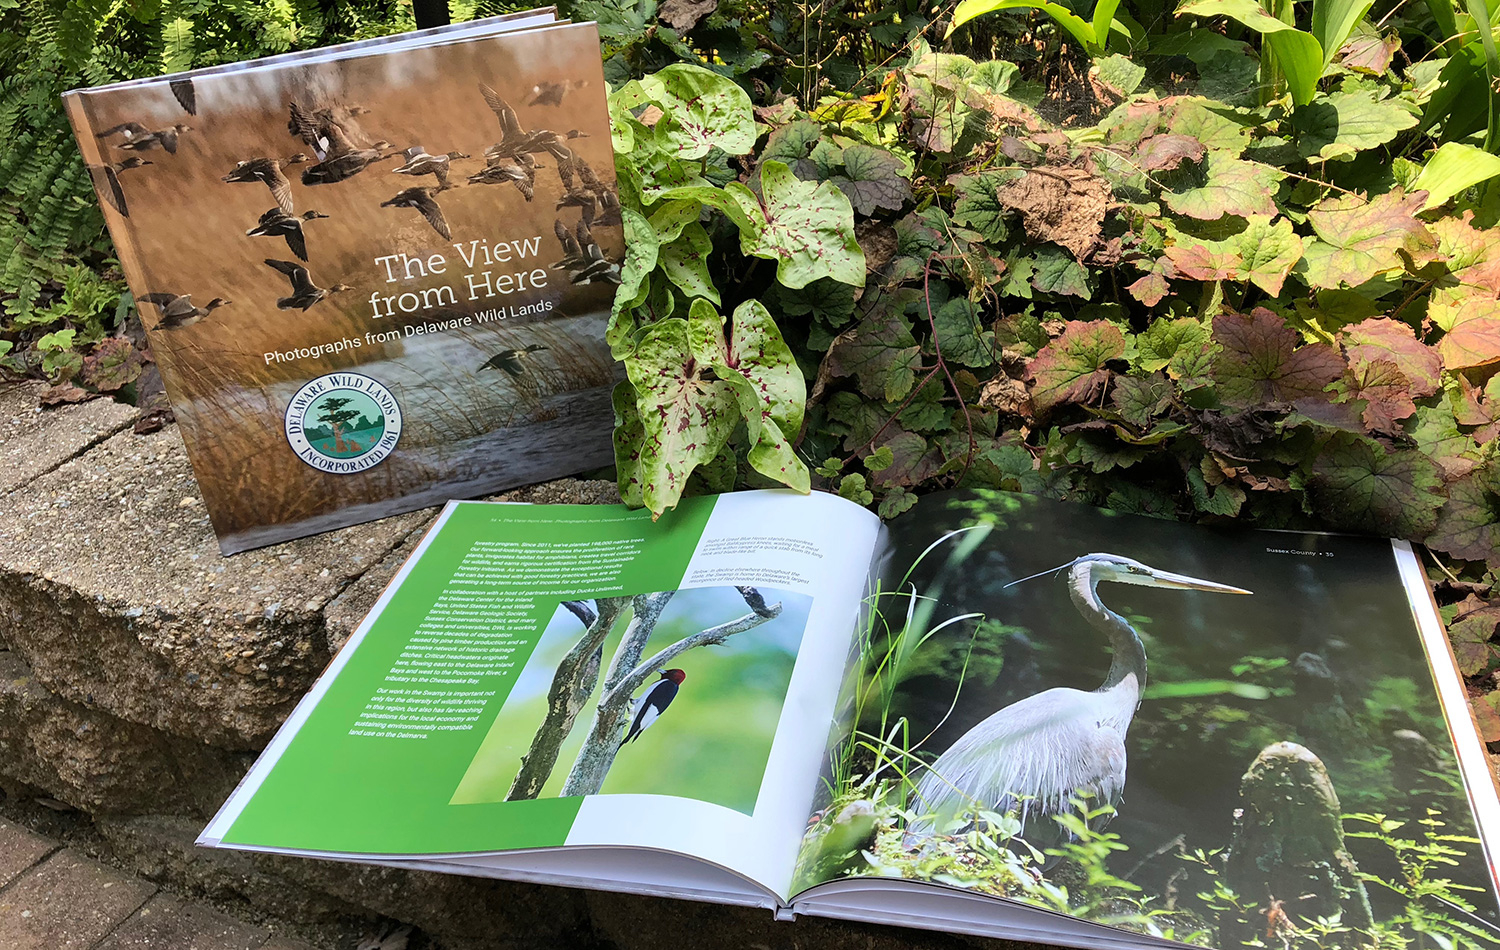 Examples of print work for Delaware Wild Lands